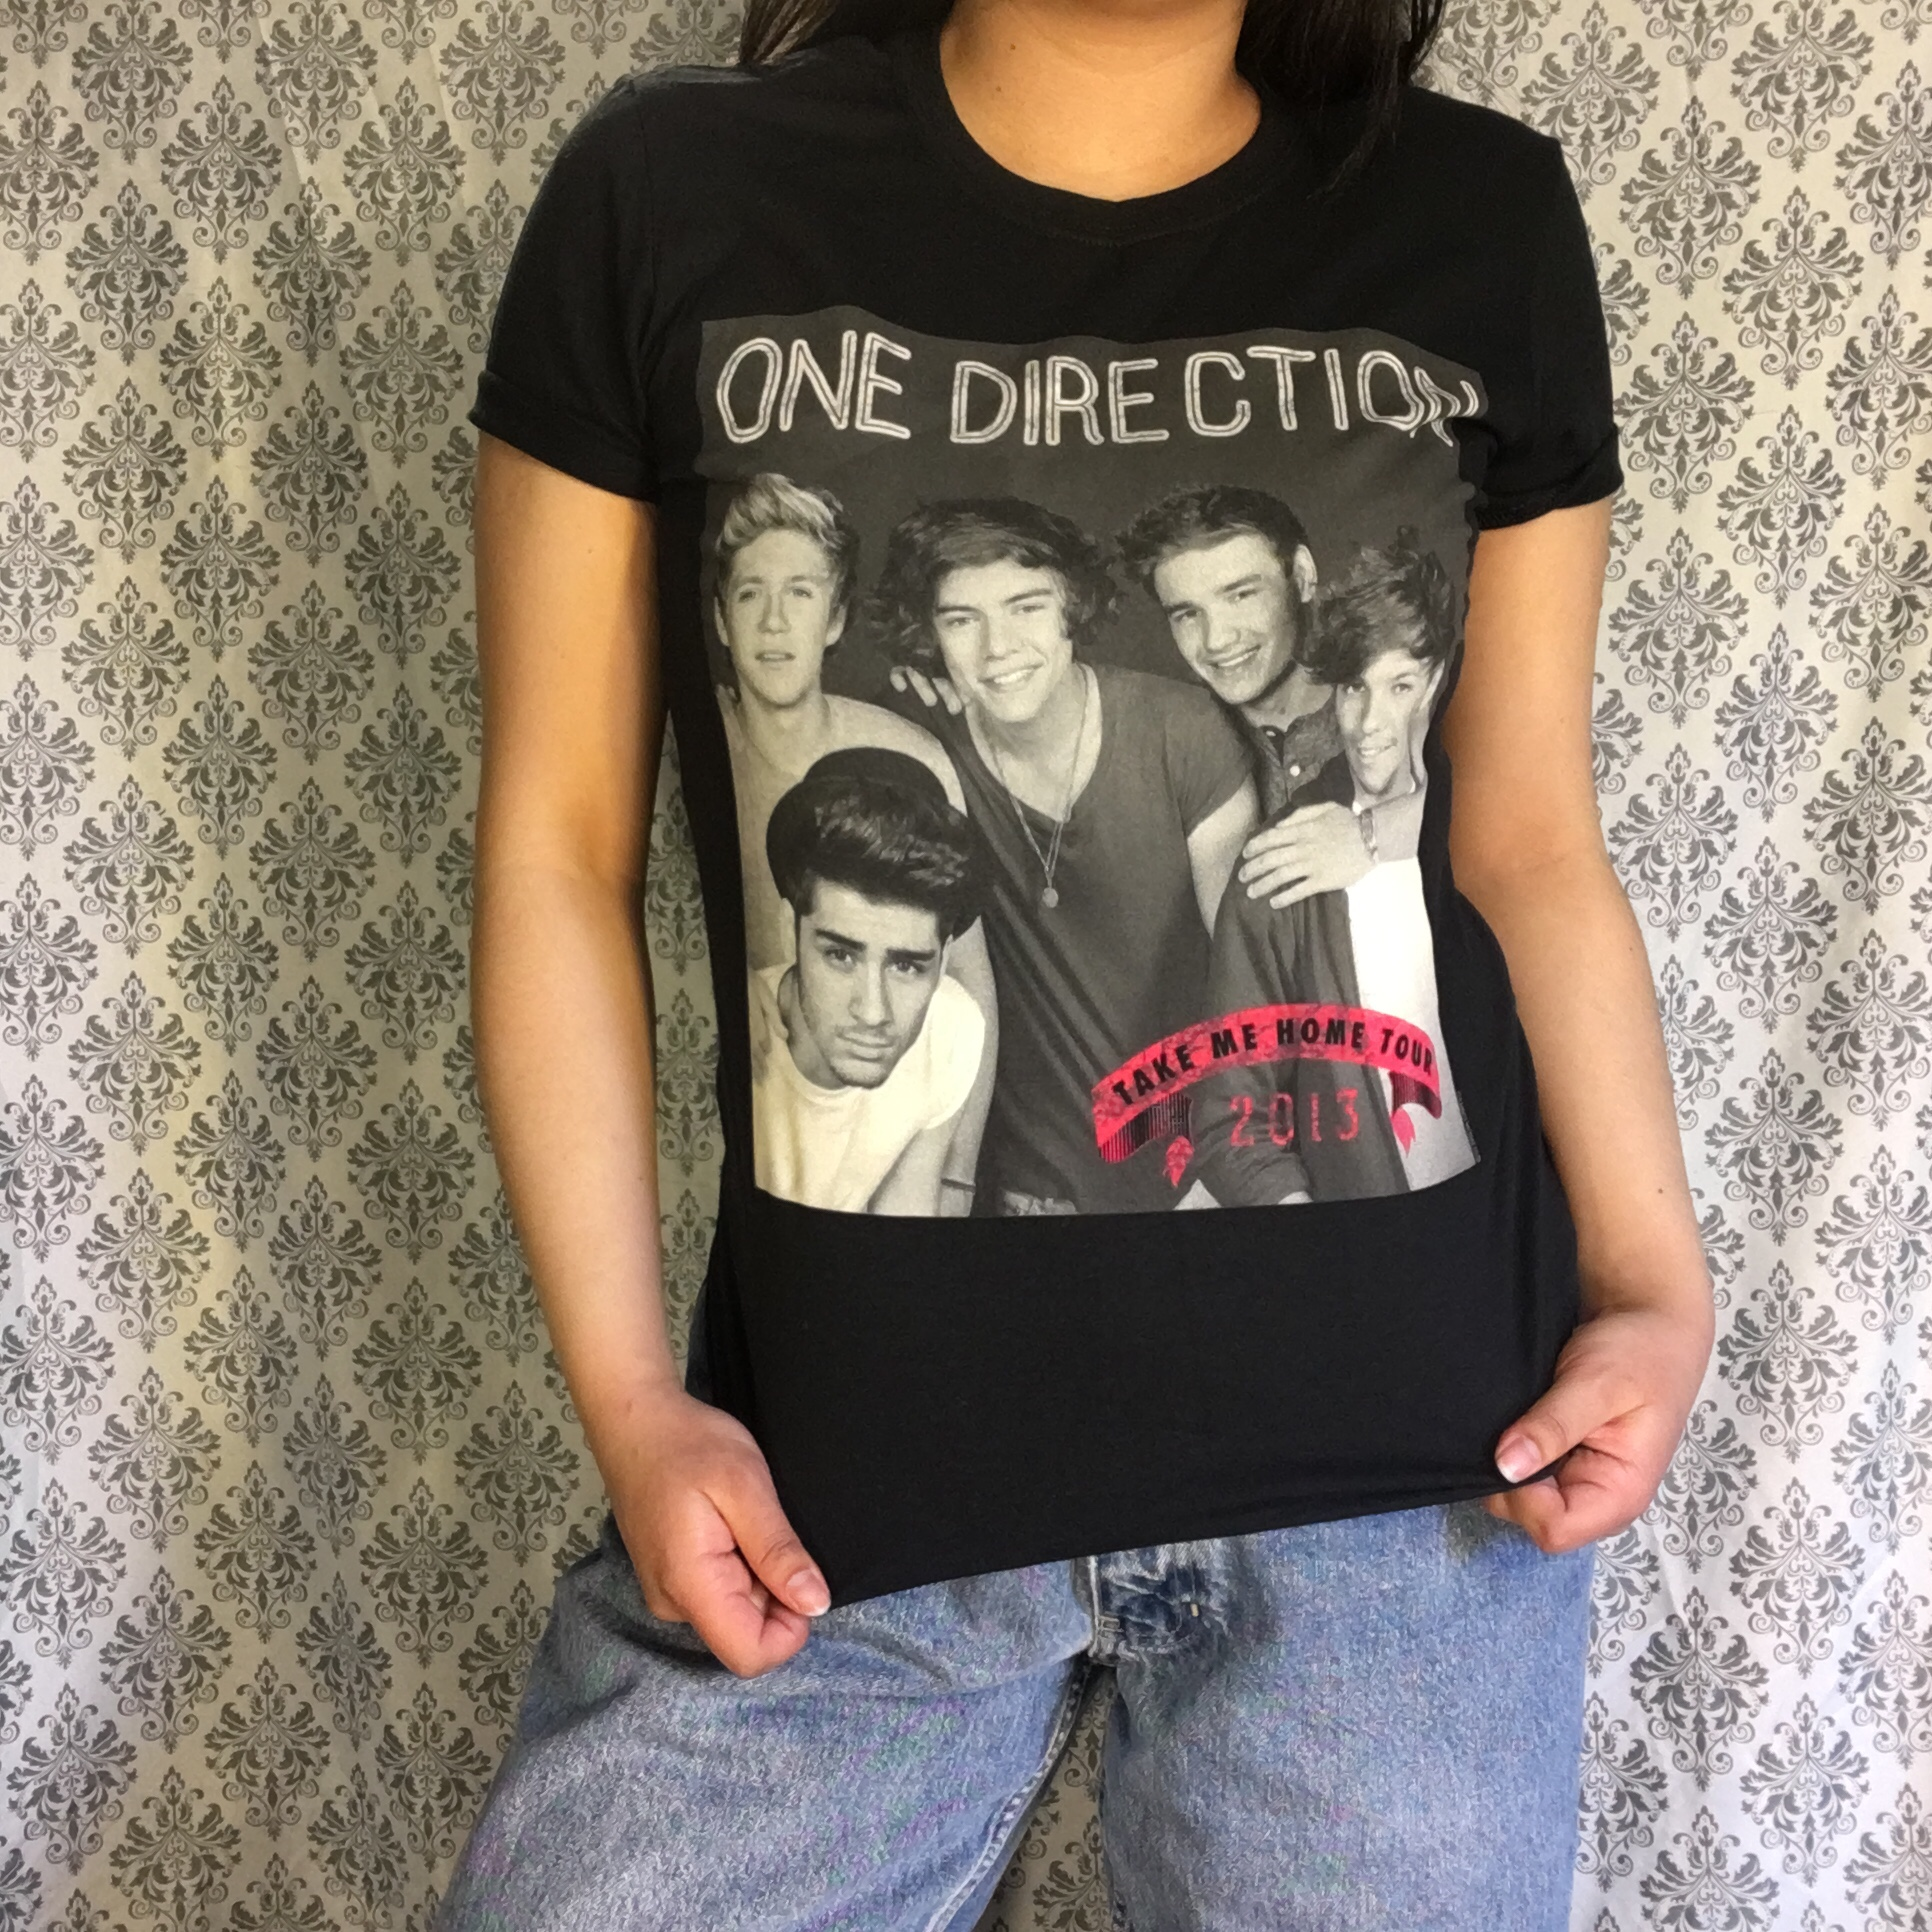 One Direction Official Tour Merch T Shirt From The Depop